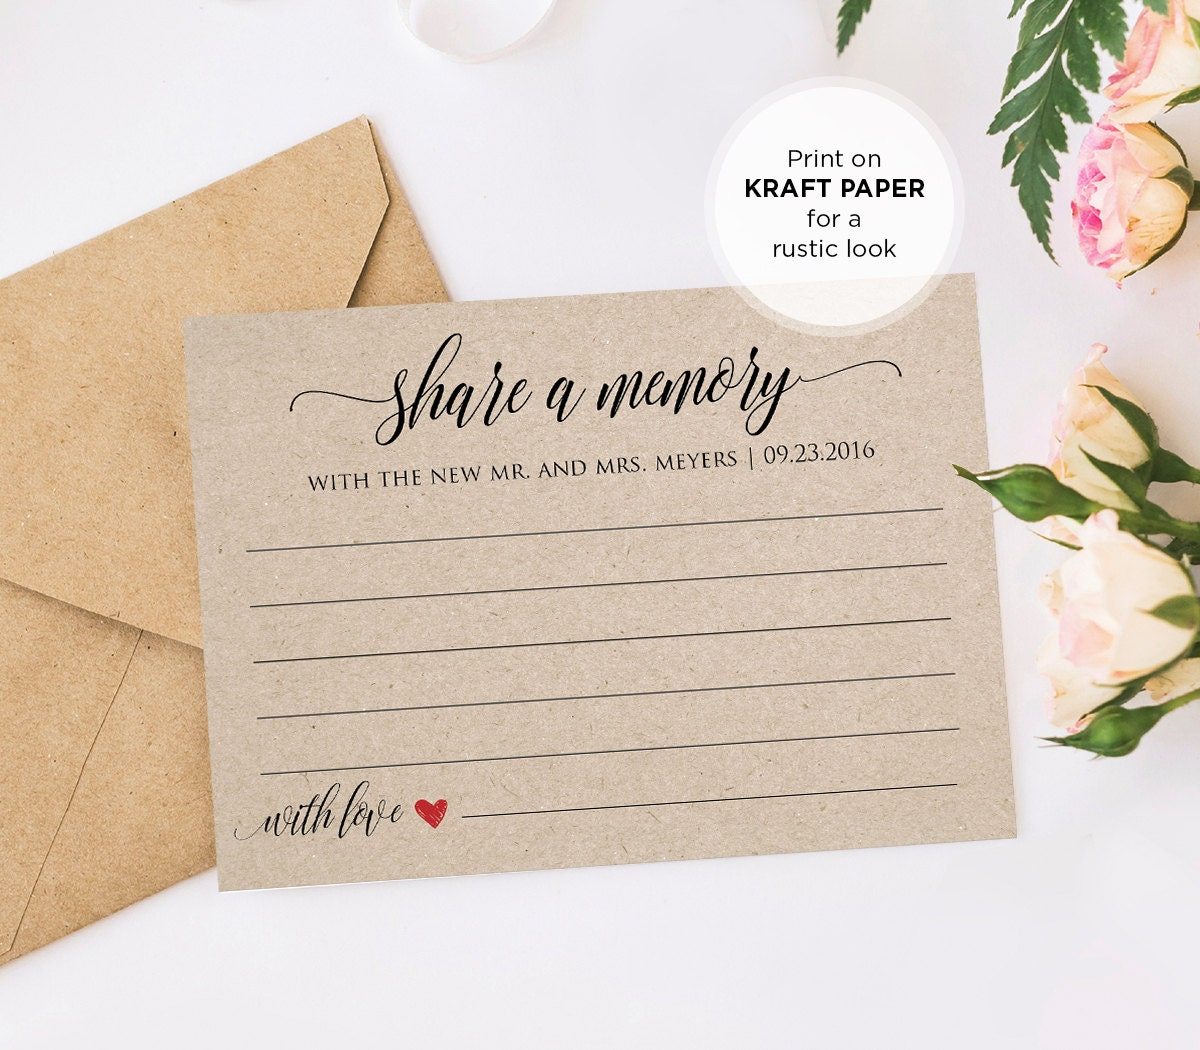 Share a memory printable card wedding advice template for for Bridal shower advice cards template